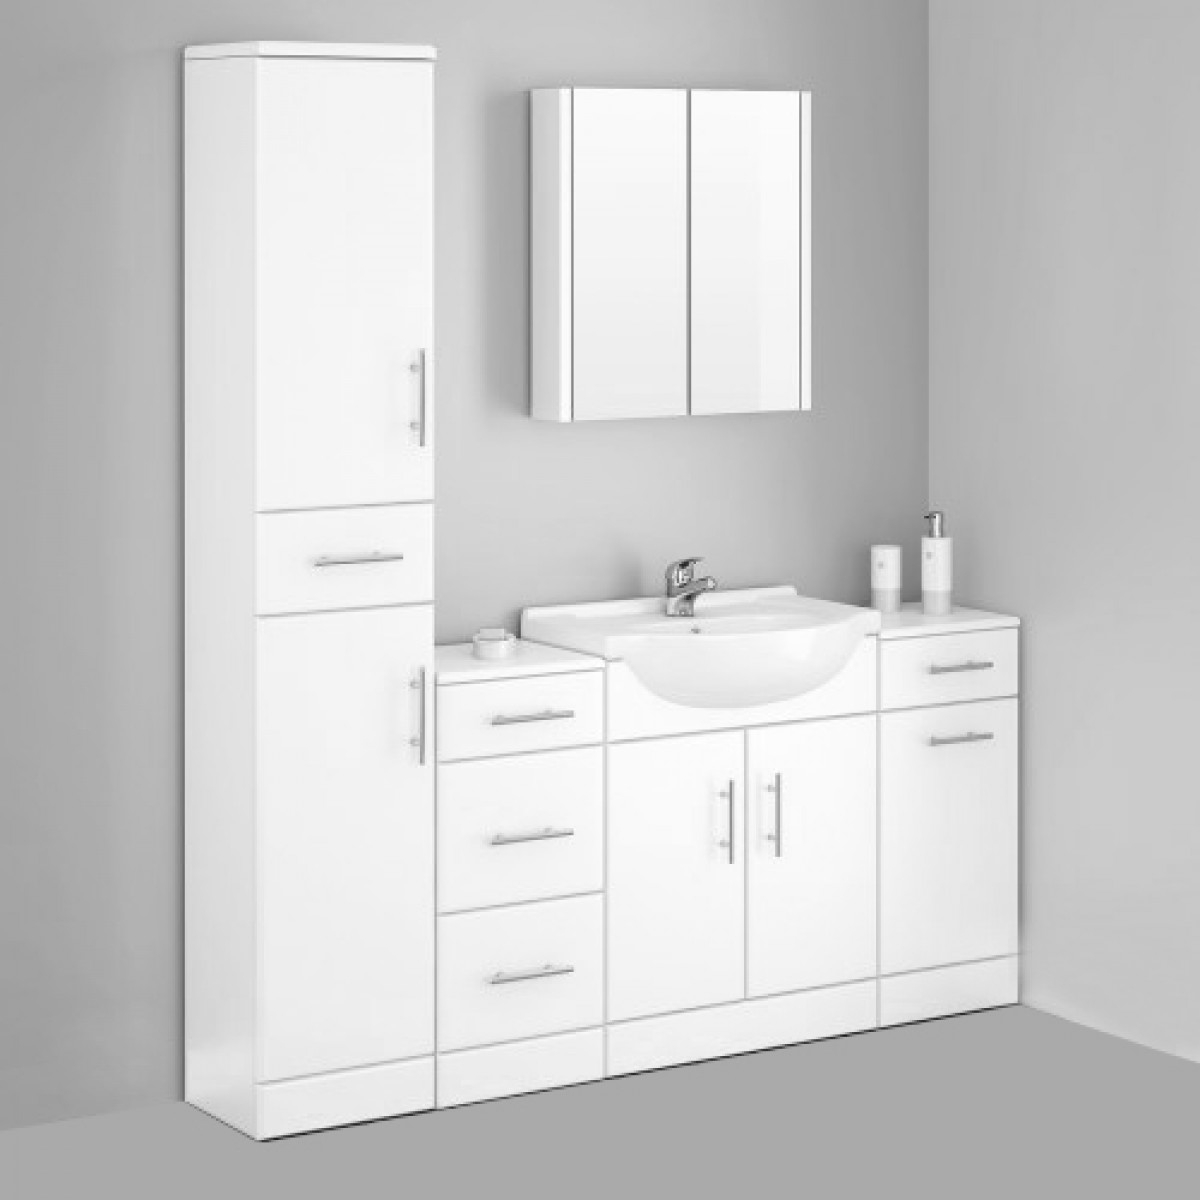 Alaska Bathroom Furniture Pack 5 Piece White Gloss within dimensions 1200 X 1200